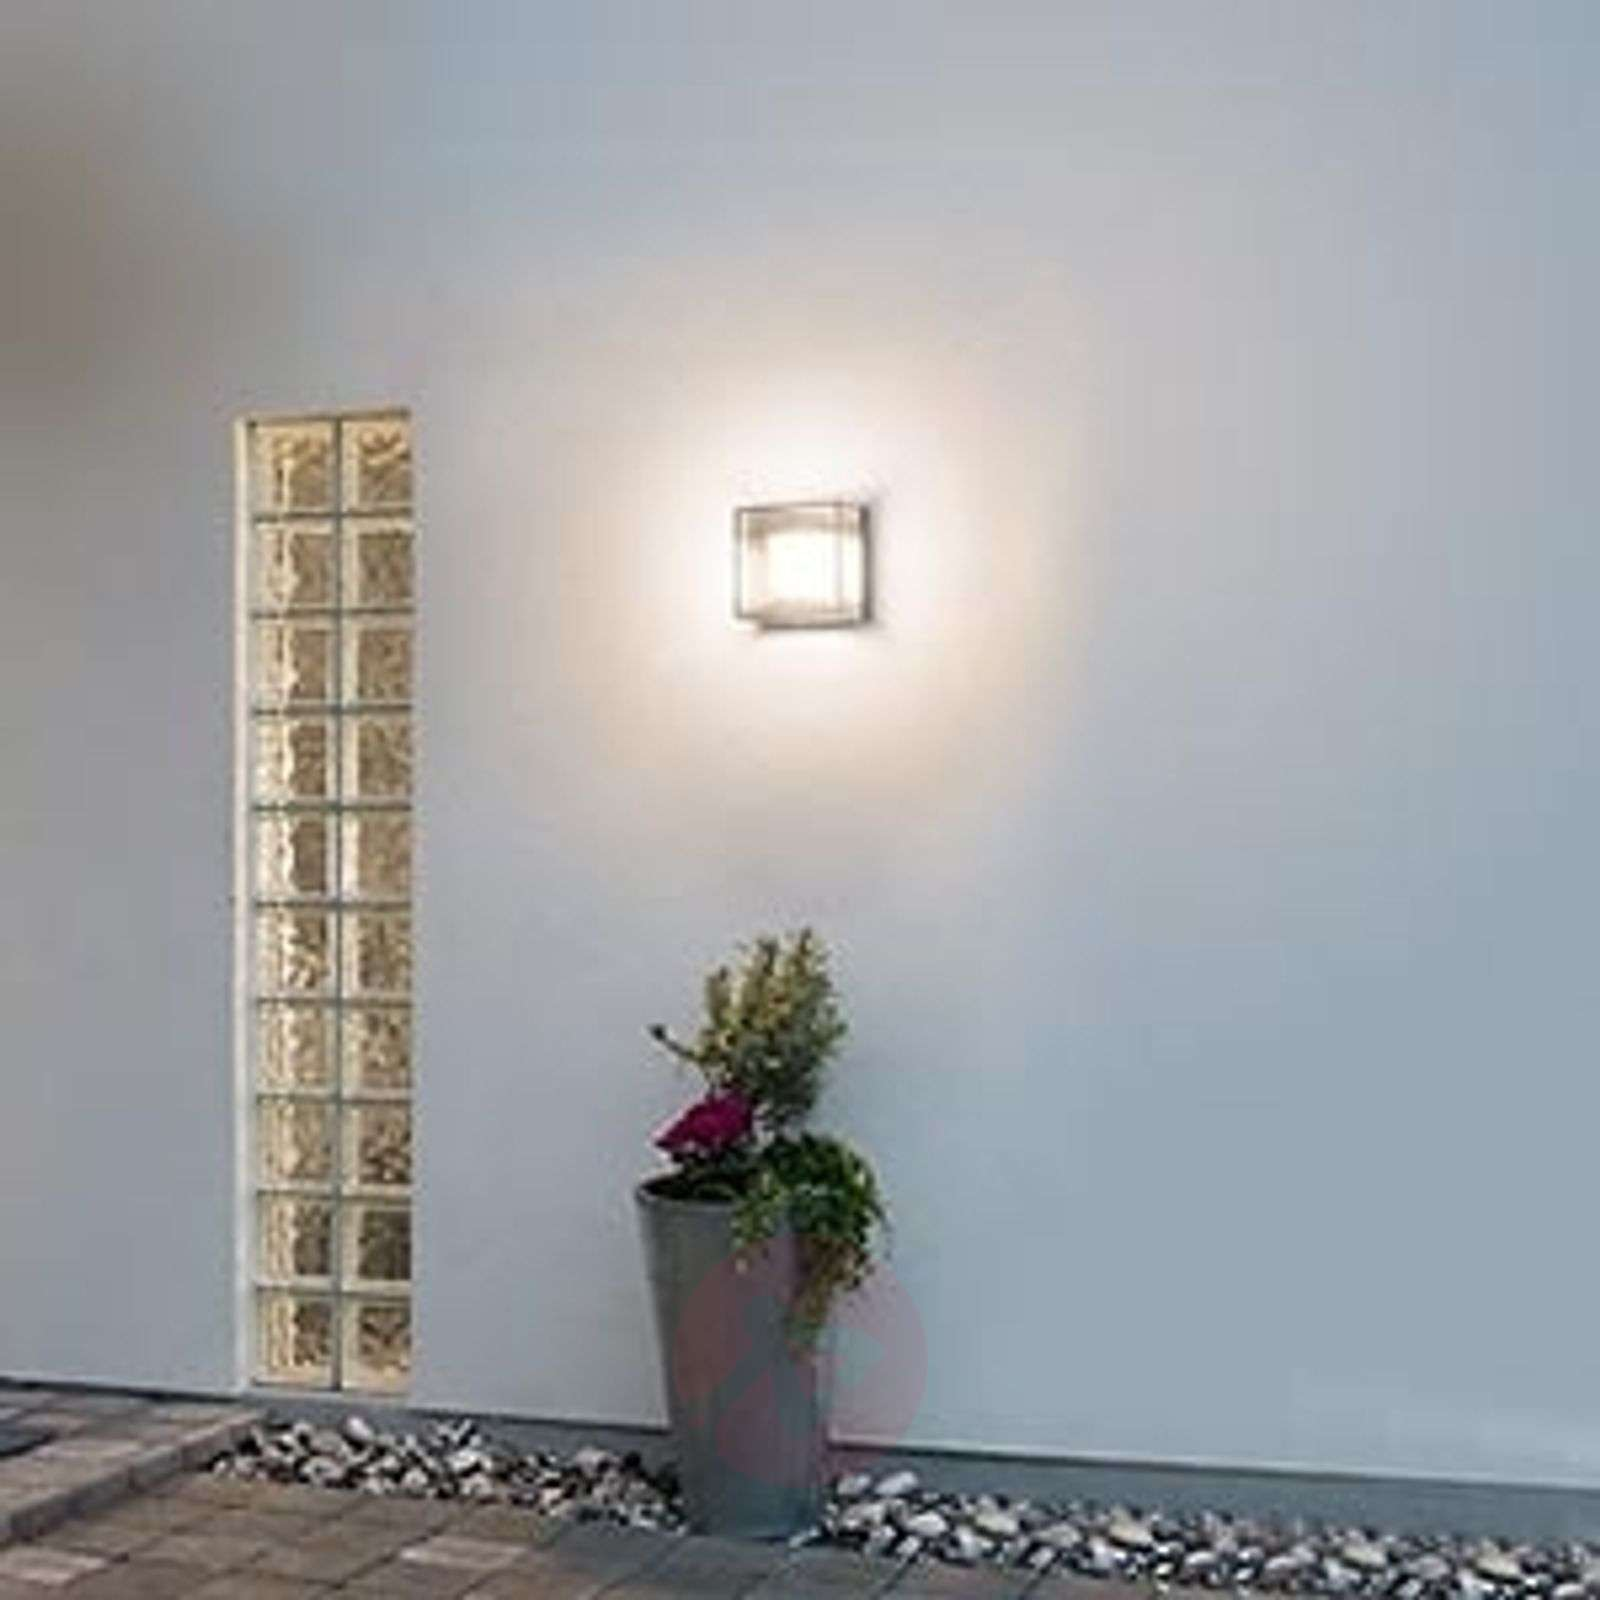 Compra aplique cuadrado de pared exterior led sanremo - Aplique de pared exterior ...